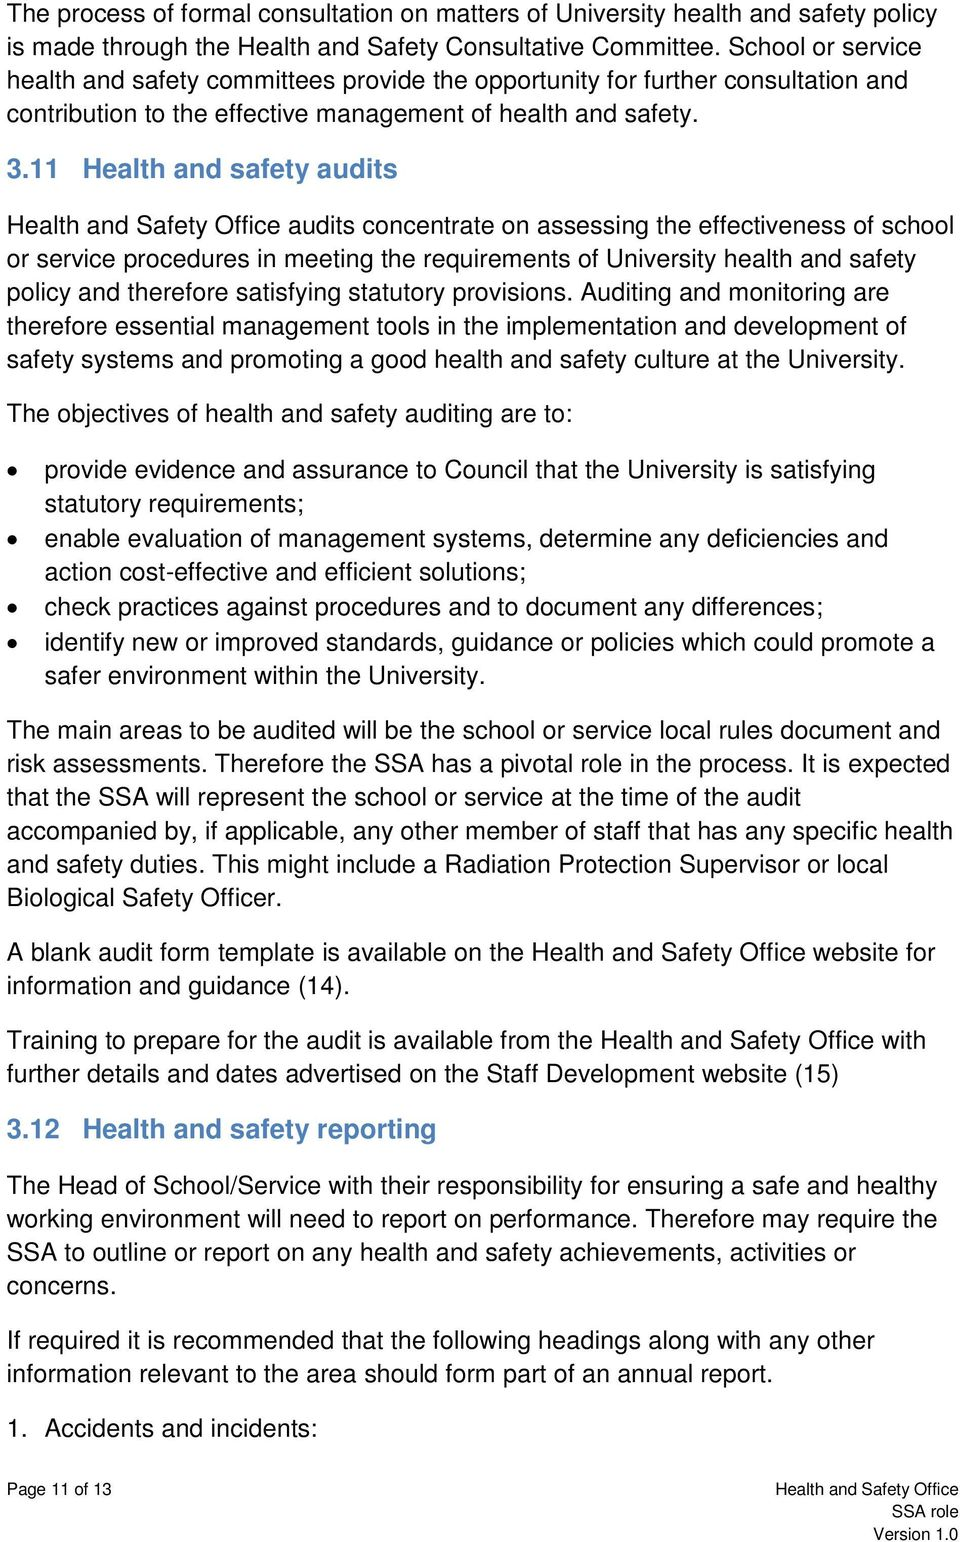 11 Health and safety audits audits concentrate on assessing the effectiveness of school or service procedures in meeting the requirements of University health and safety policy and therefore